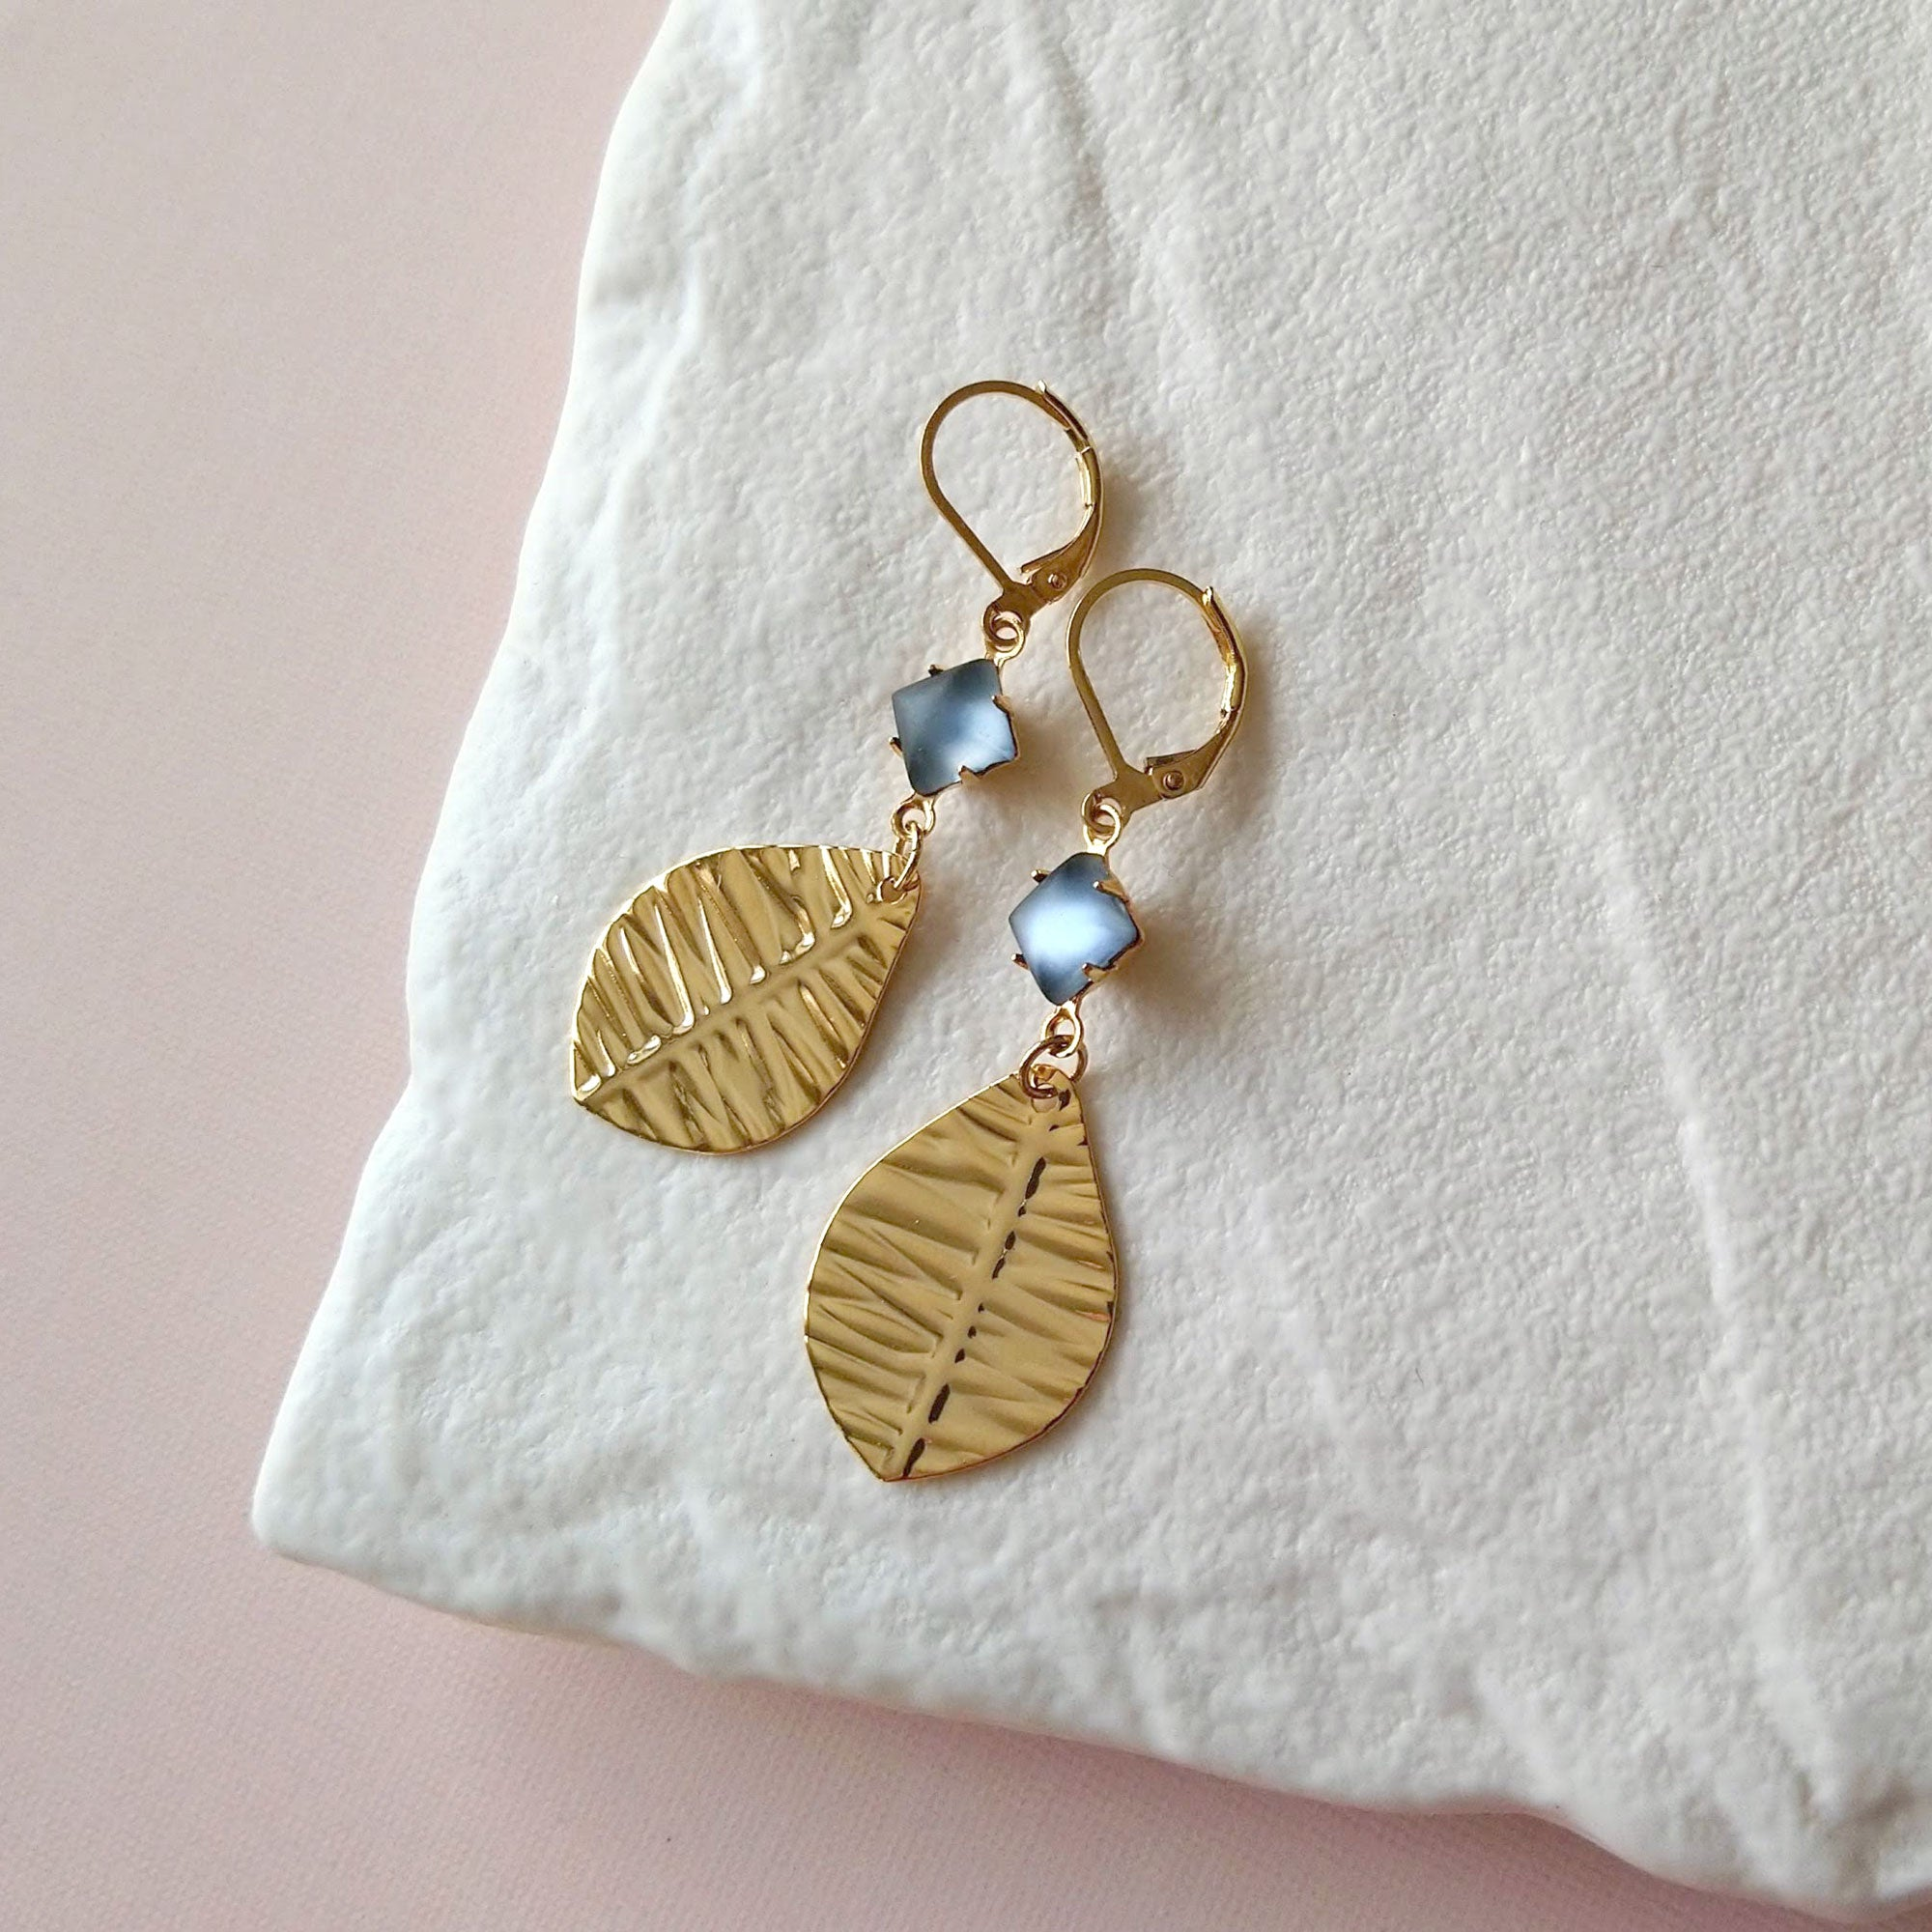 Gold plated leaves earrings with frosted grey stones